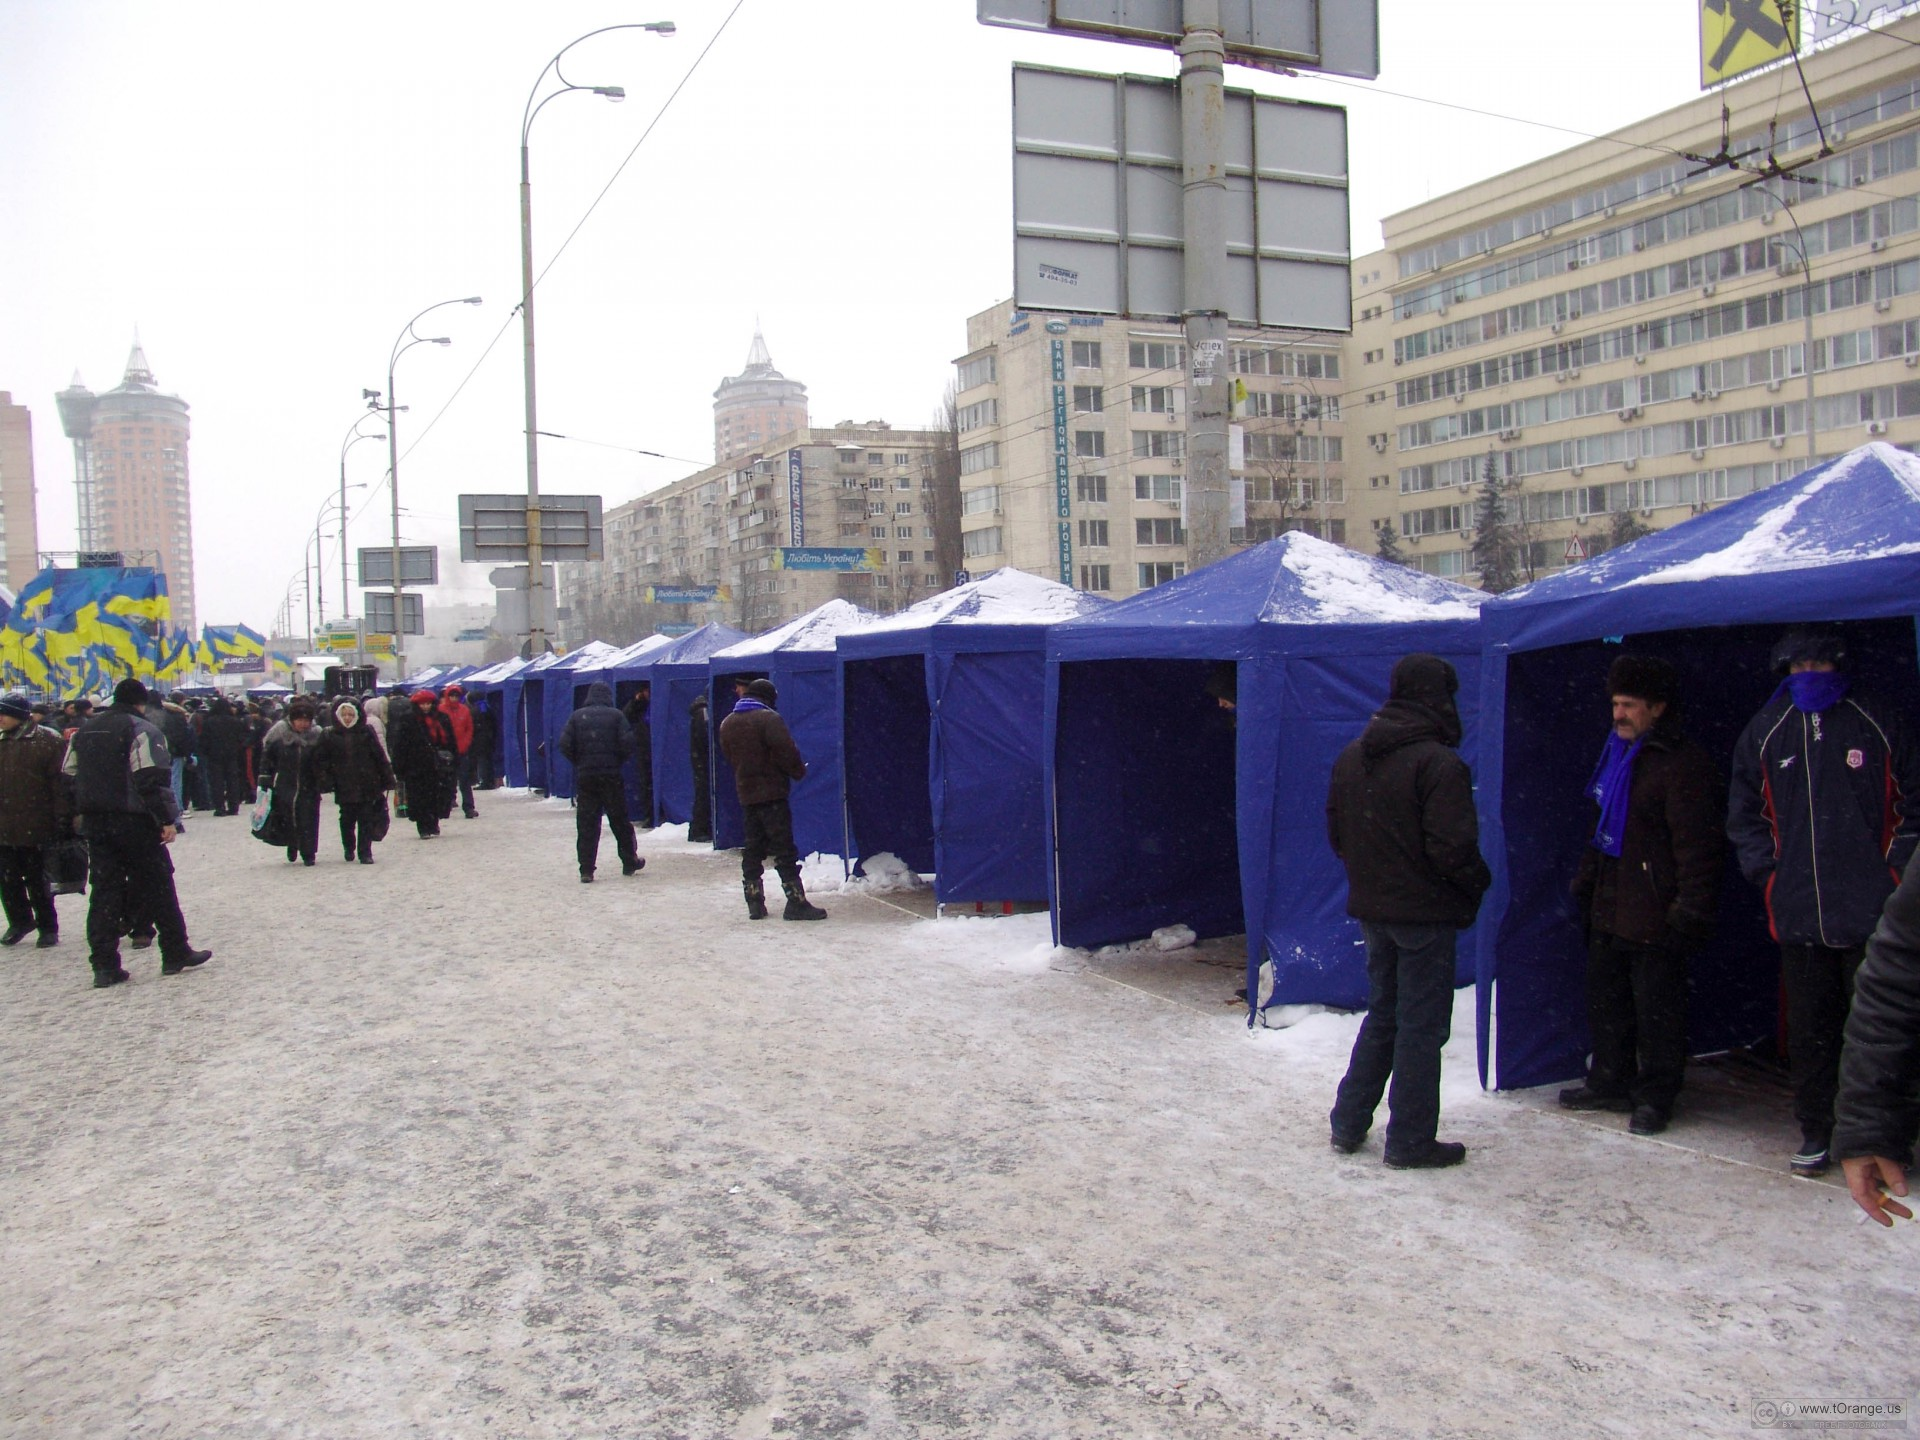 Tents for Yanukovych in Kiev on the area of Lesya Ukrainka